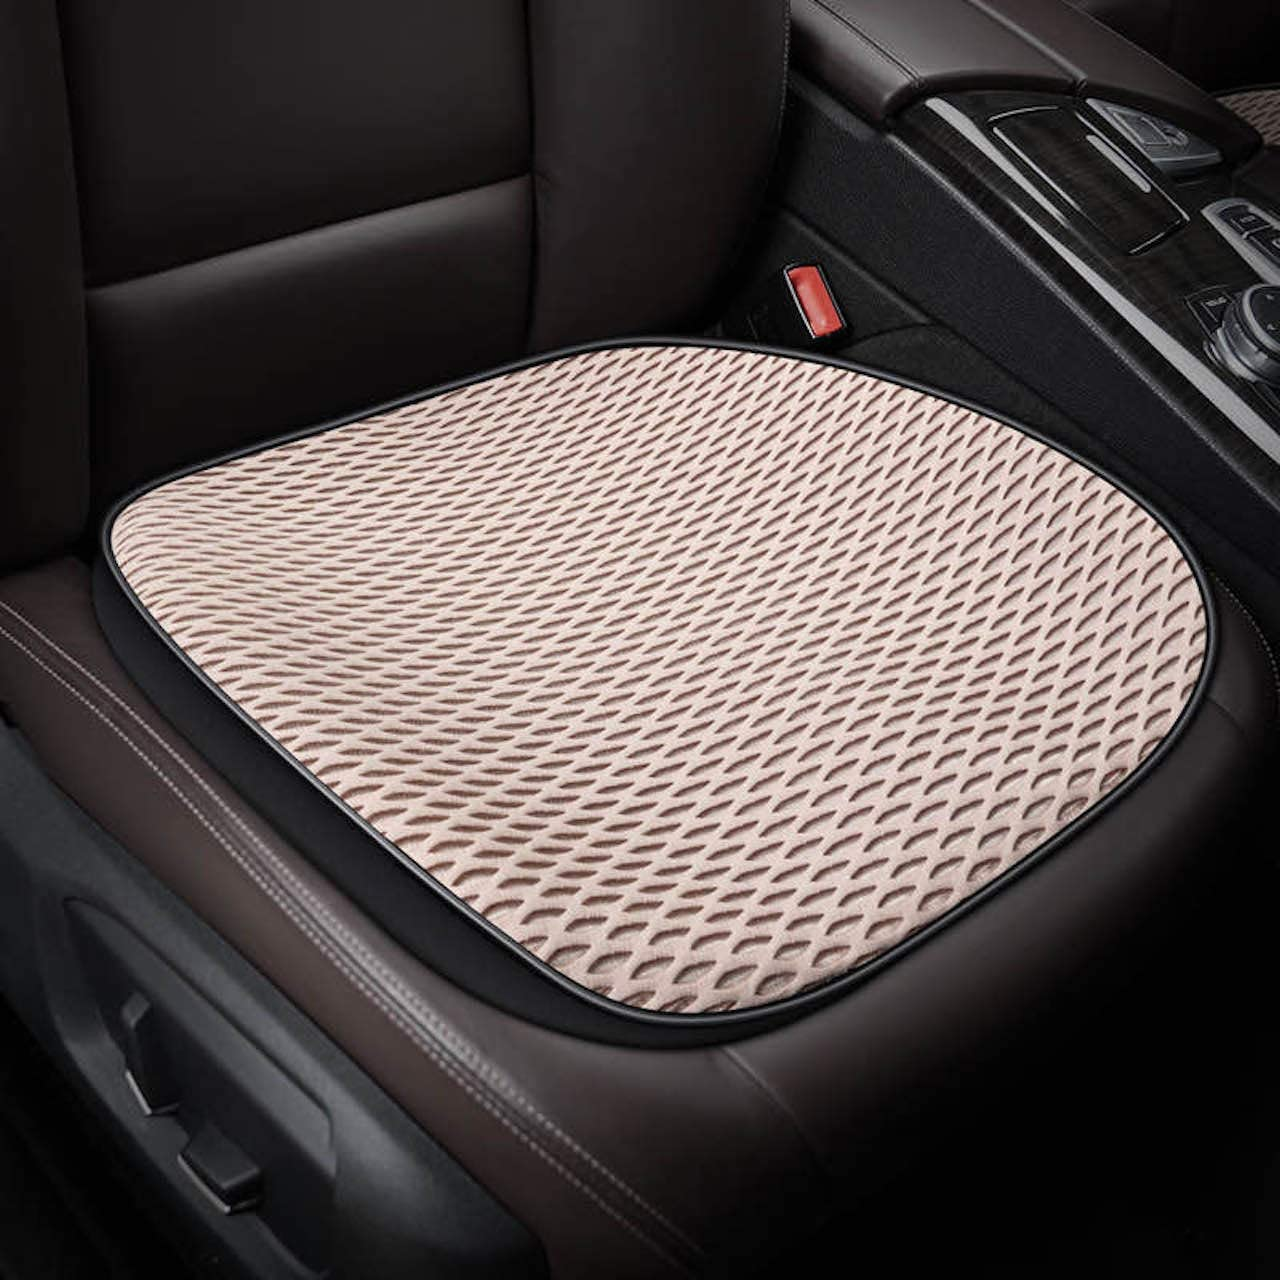 Eaglet Cooling Car Seat Cushion, Multi-Use Universal Seat Cushion with Breathable 3D Stereo Mesh Cover, Cooling Gel, Anti-Slip Backing, Ice Pad for Support in Car, Office, Home, and Outdoor (Beige)